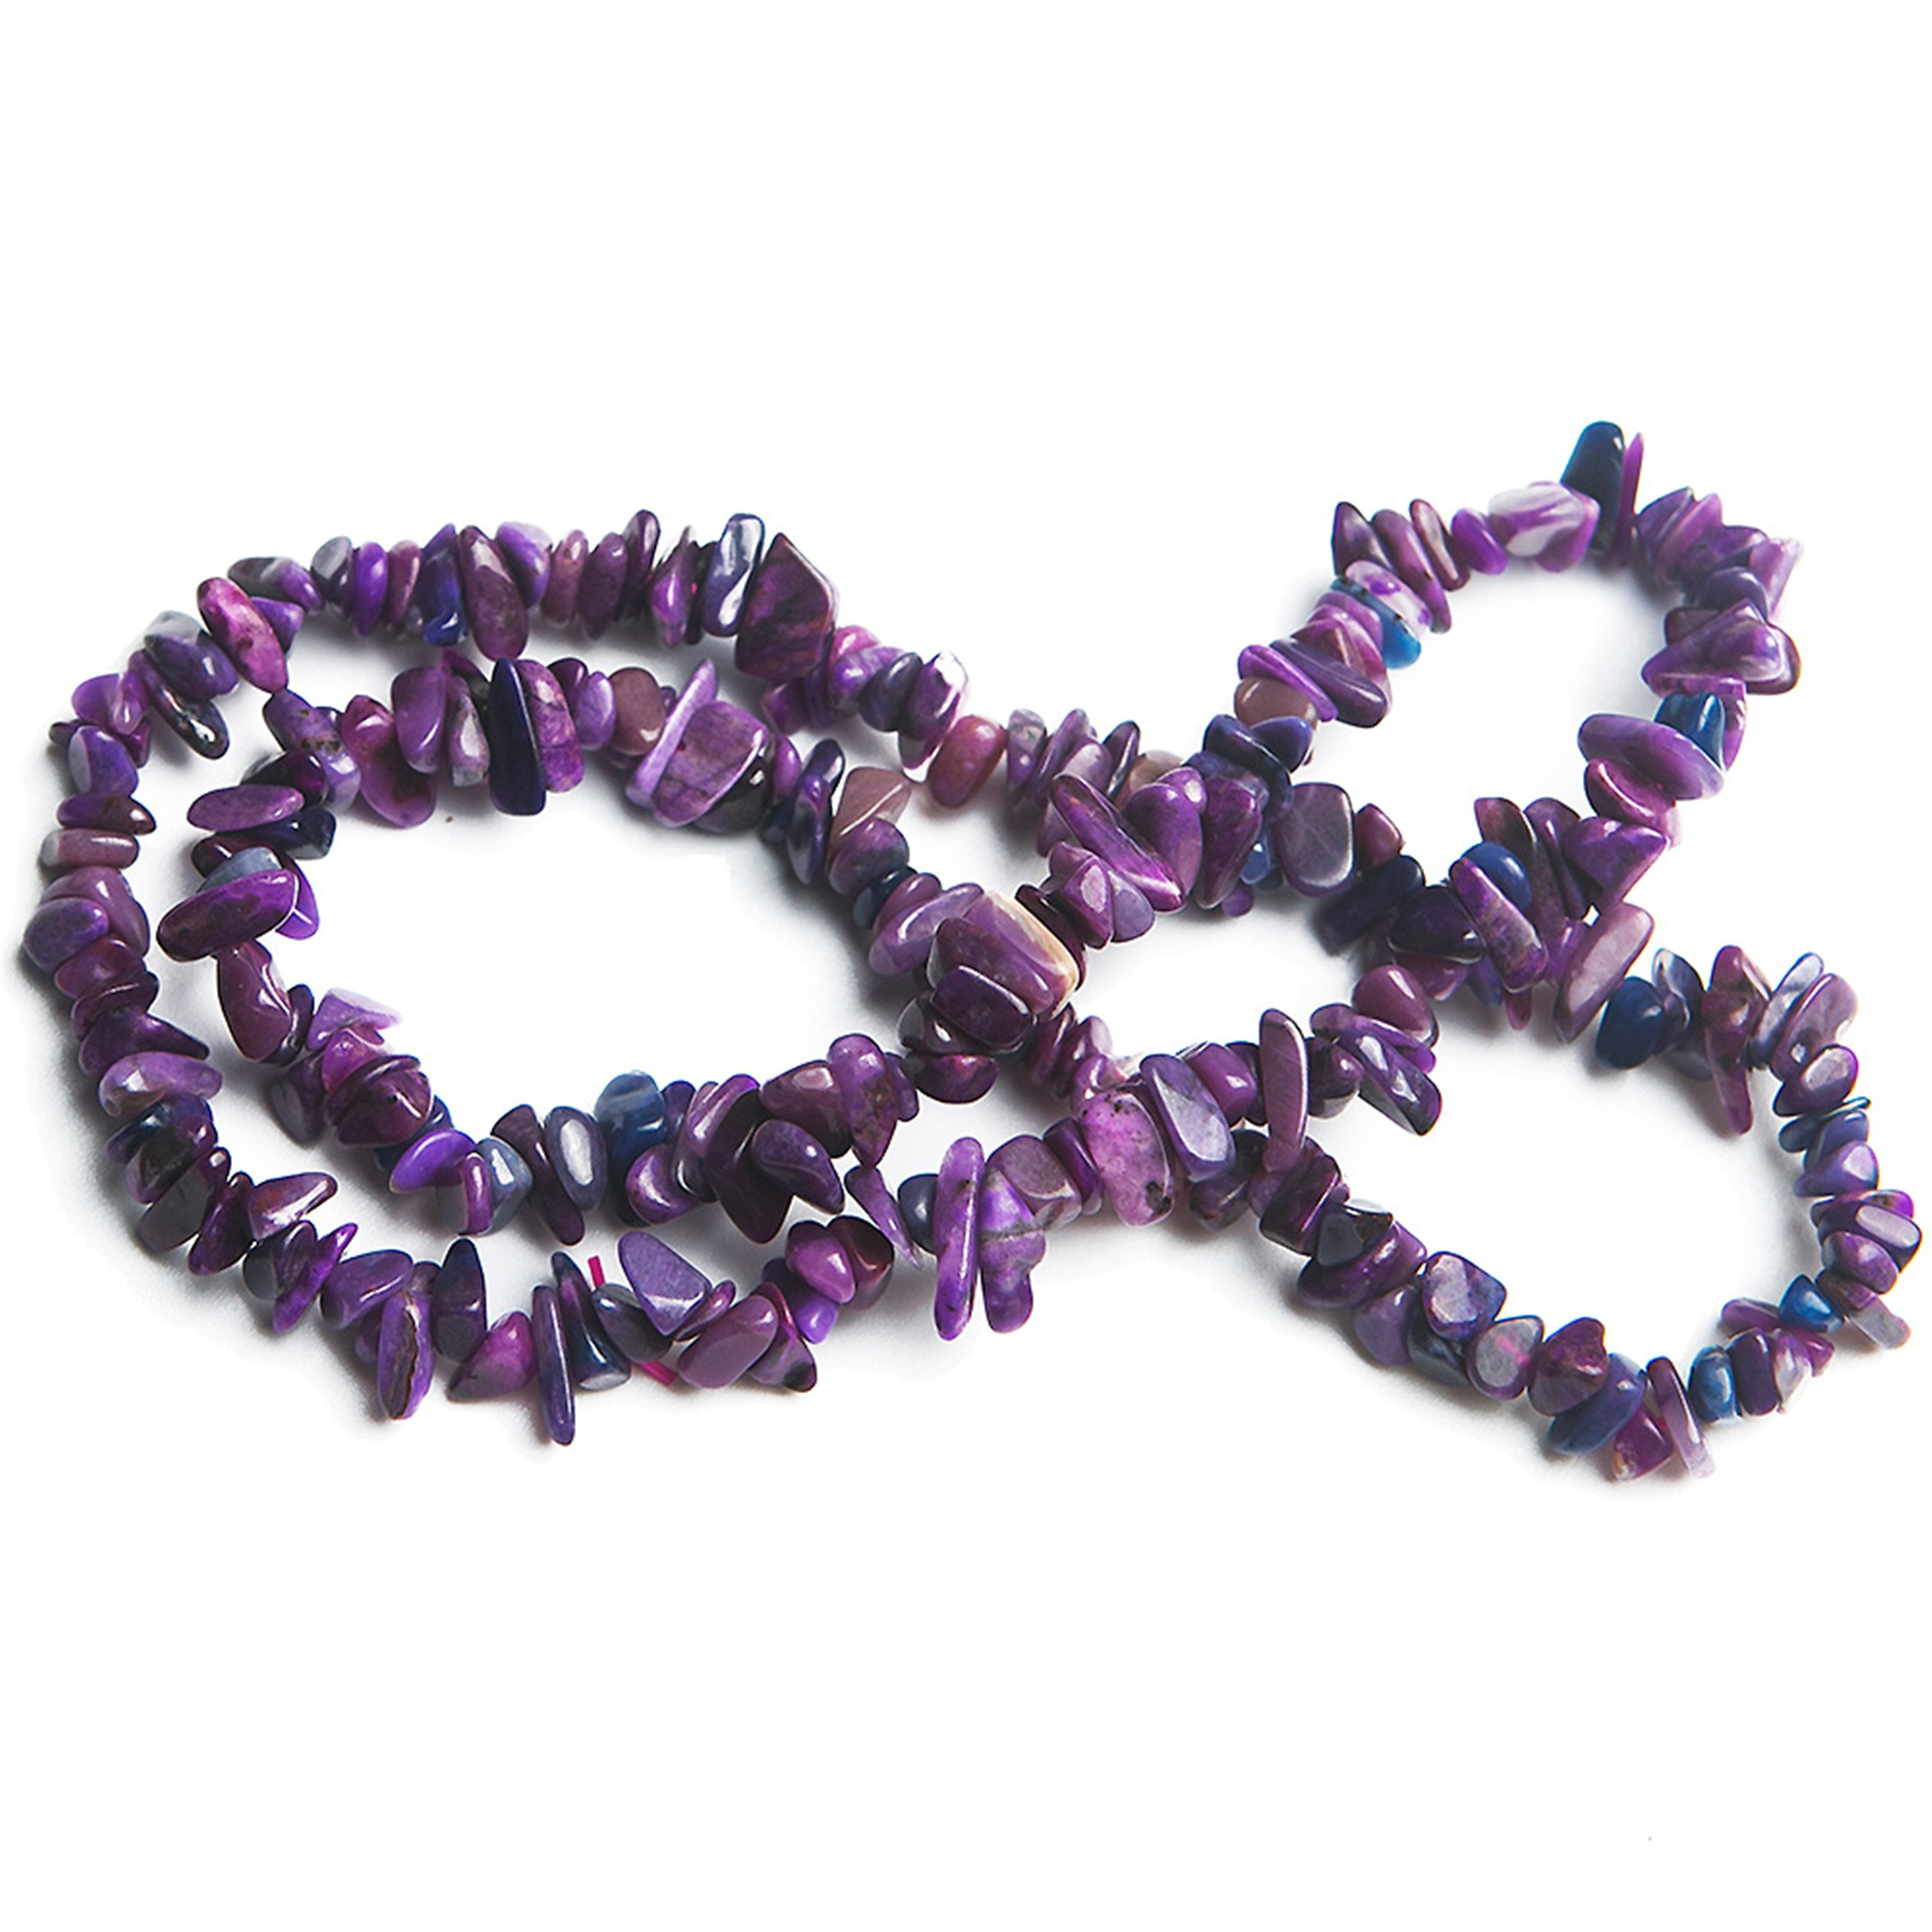 LiZiFang South African Genuine Natural Sugilite Gemstone Three Laps Woman Bracelets